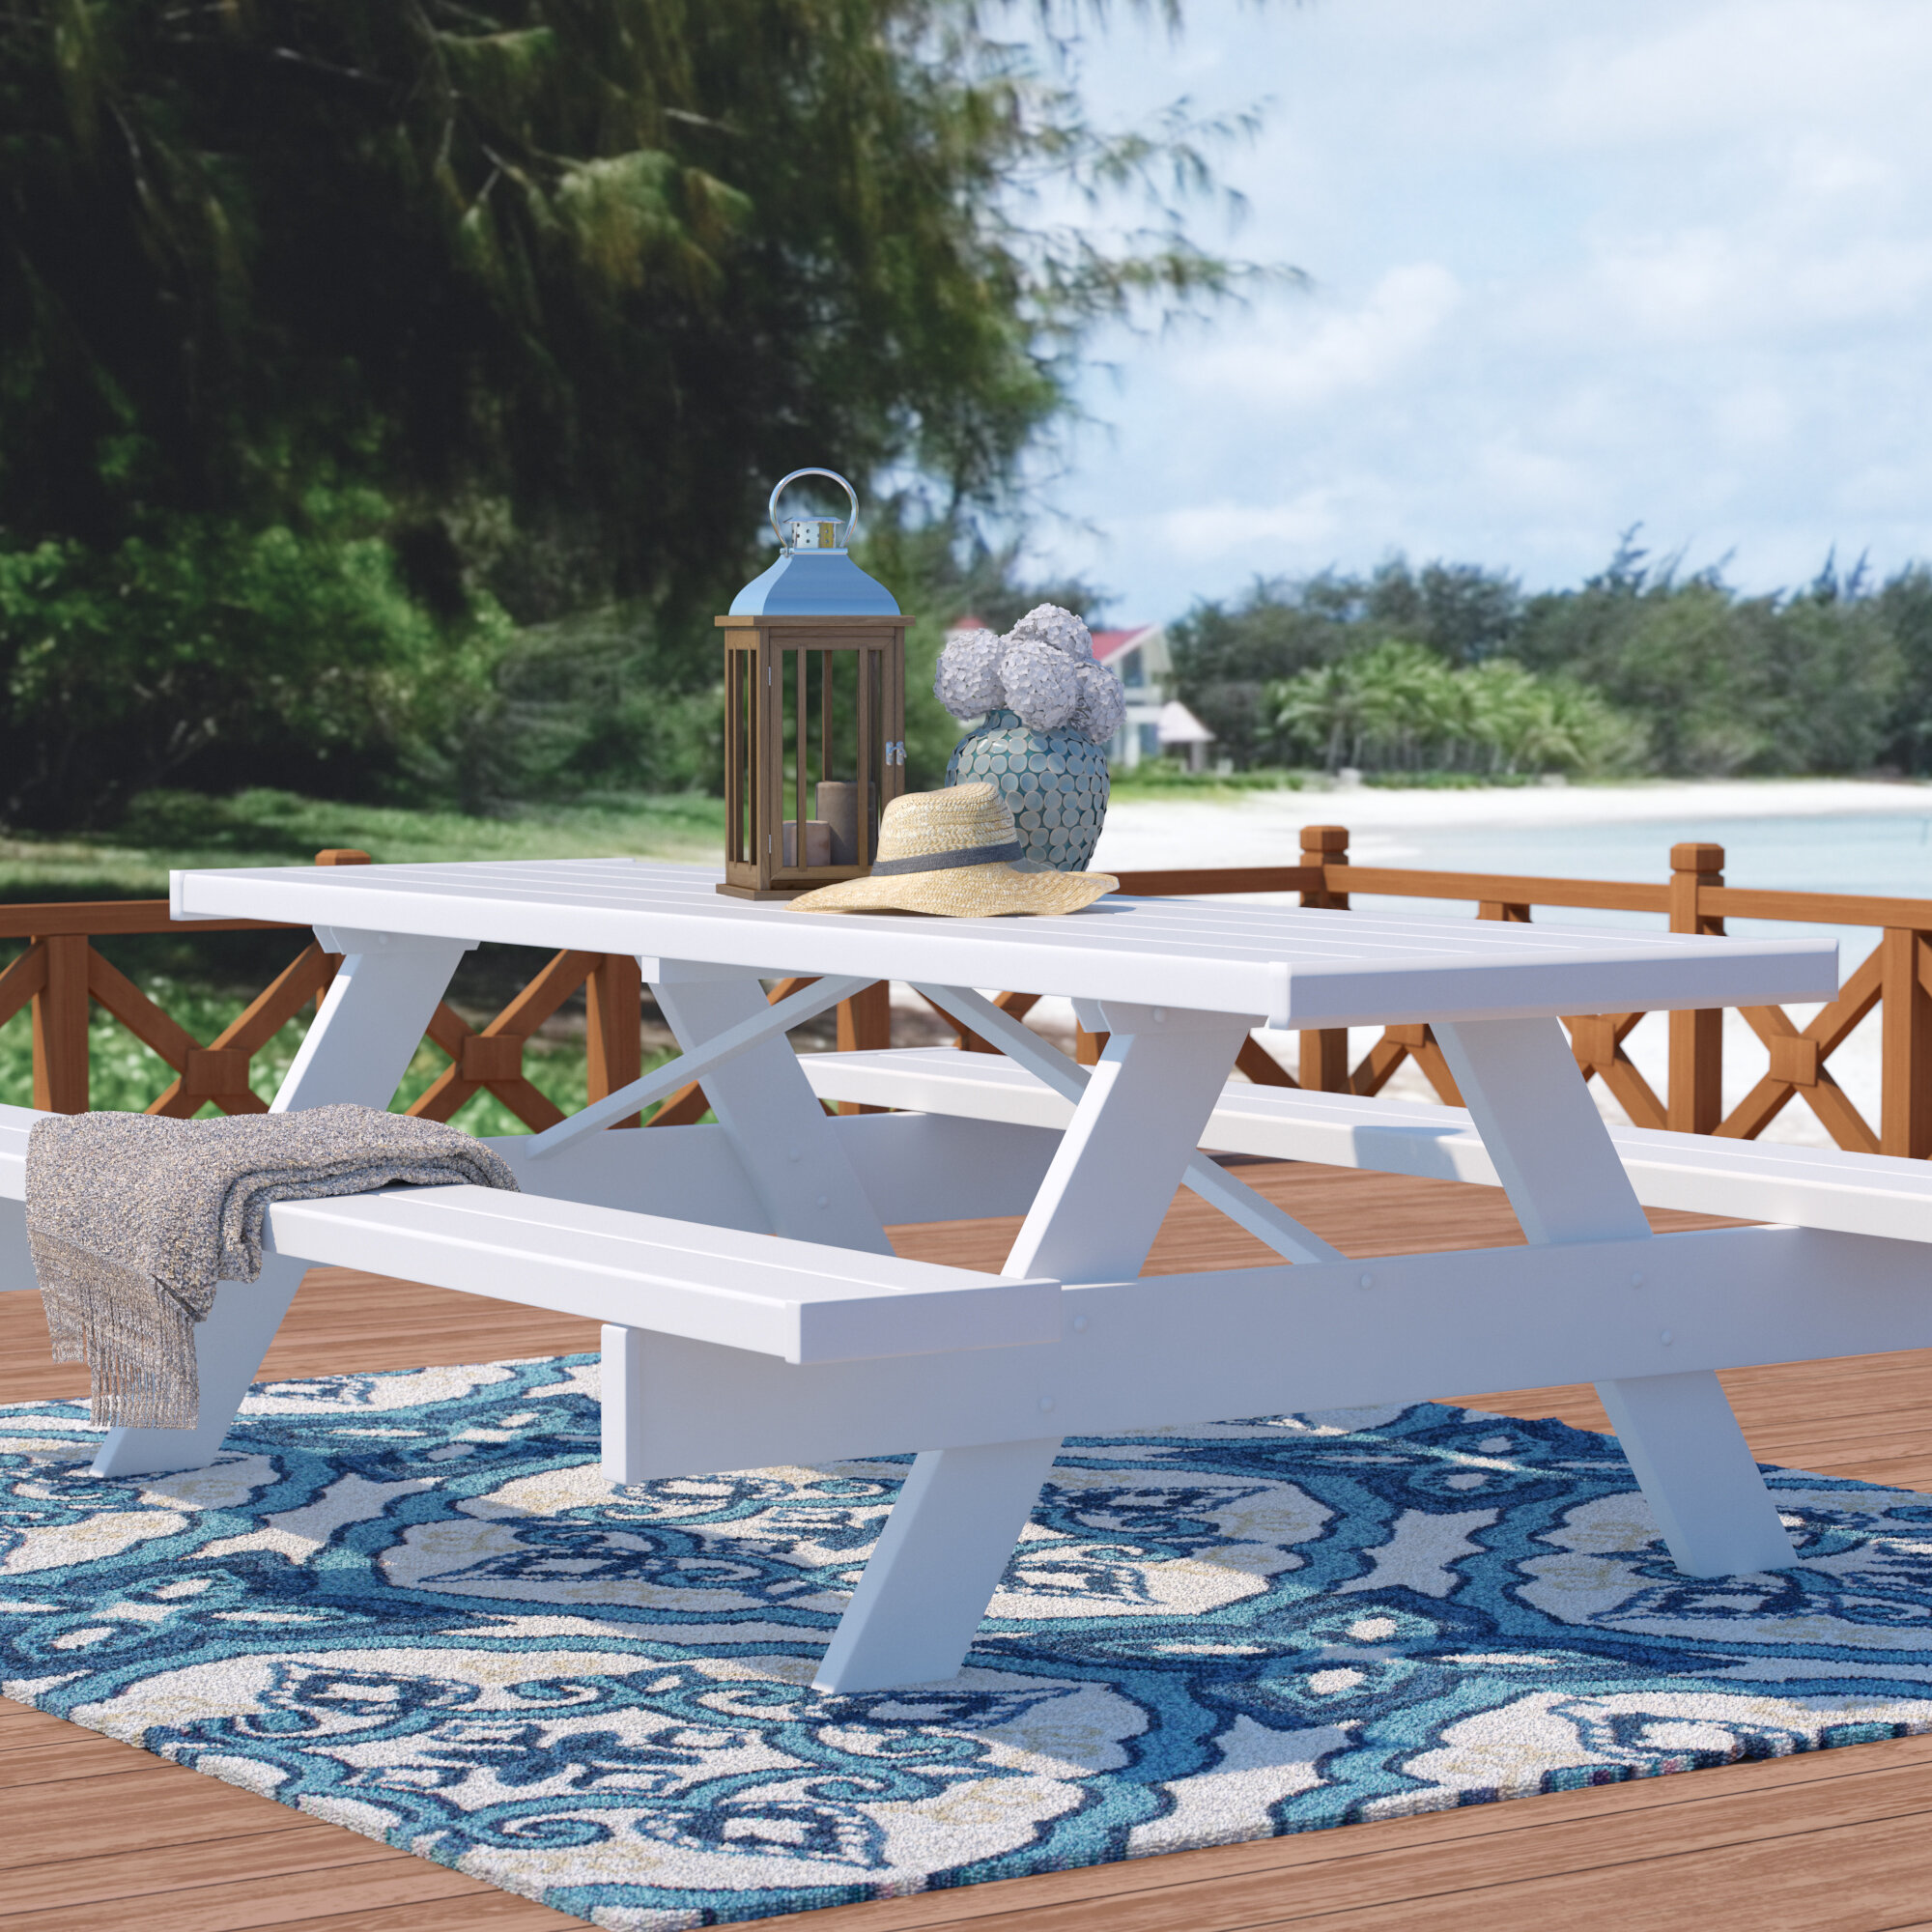 Beachcrest Home Windermere Picnic Table Reviews Wayfair - Picnic table bracket kit